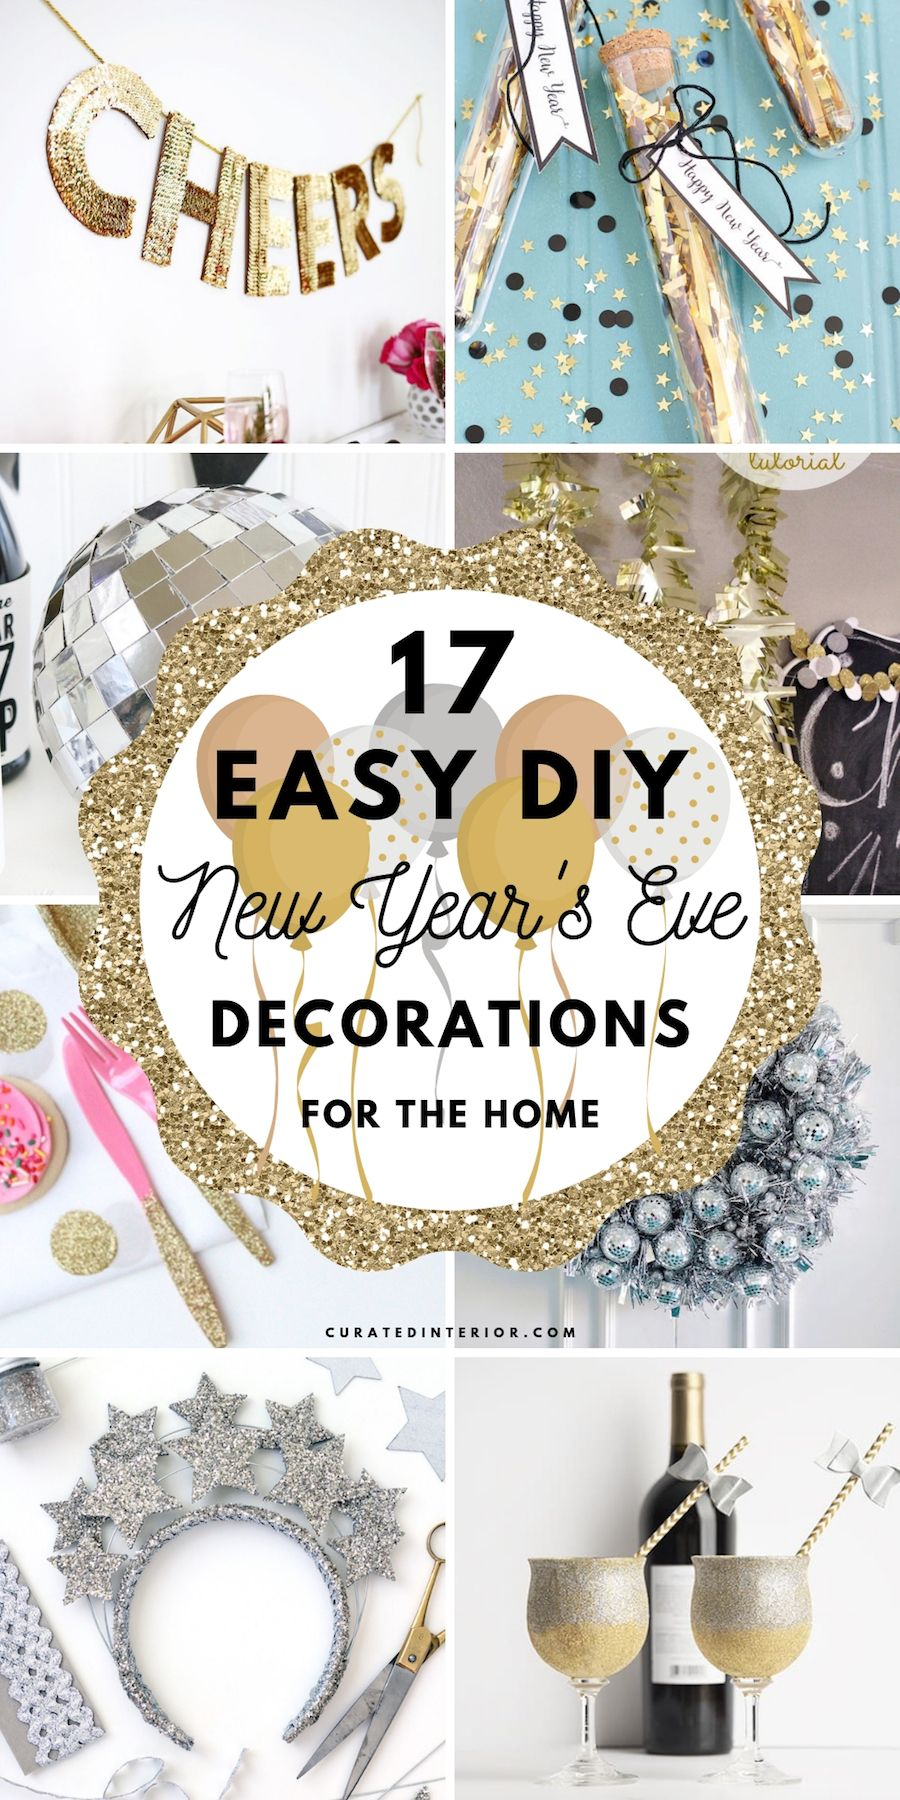 17 Easy DIY New Year's Eve Decorations to Decorate Your Home for New Year's Eve this year! #NewYearsDecor #NewYearsEve